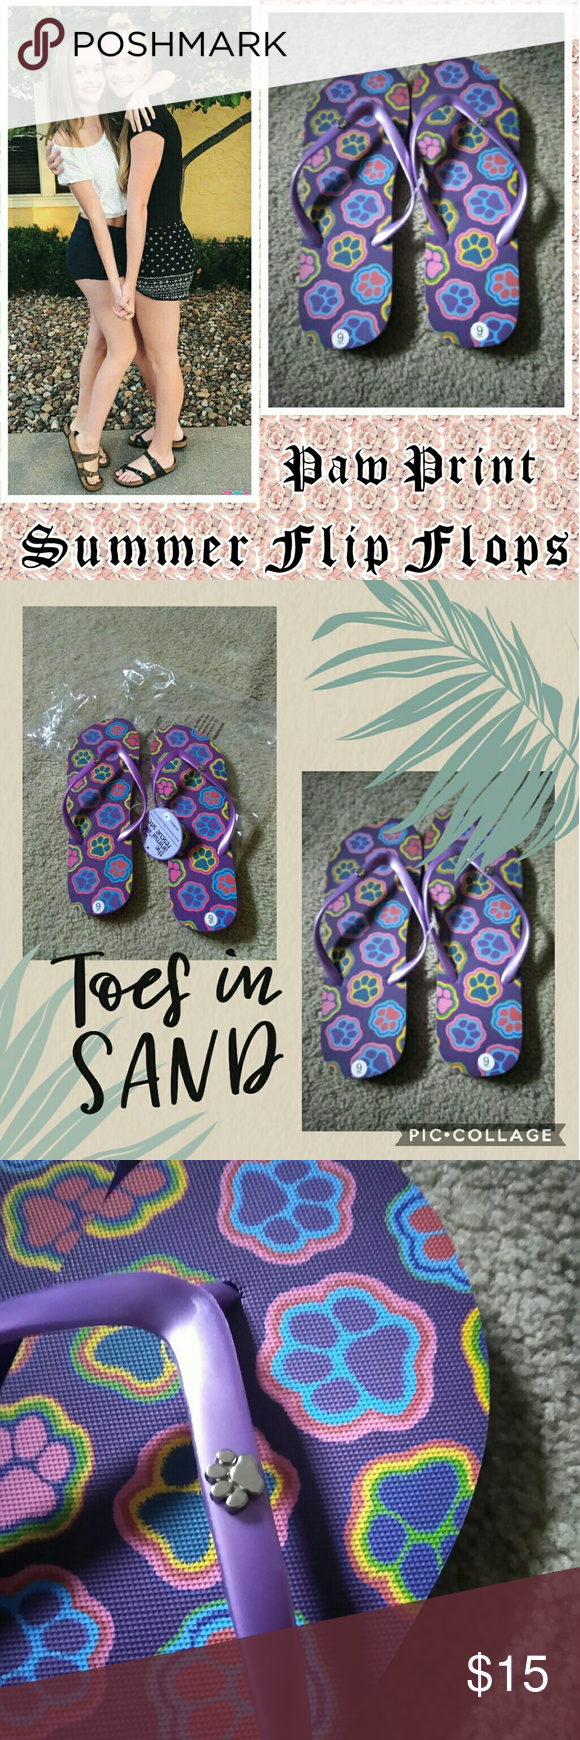 5e0fea62ef22c PAW PRINT FLIP FLOPS Brand new with tags. A vibrant purple color ...